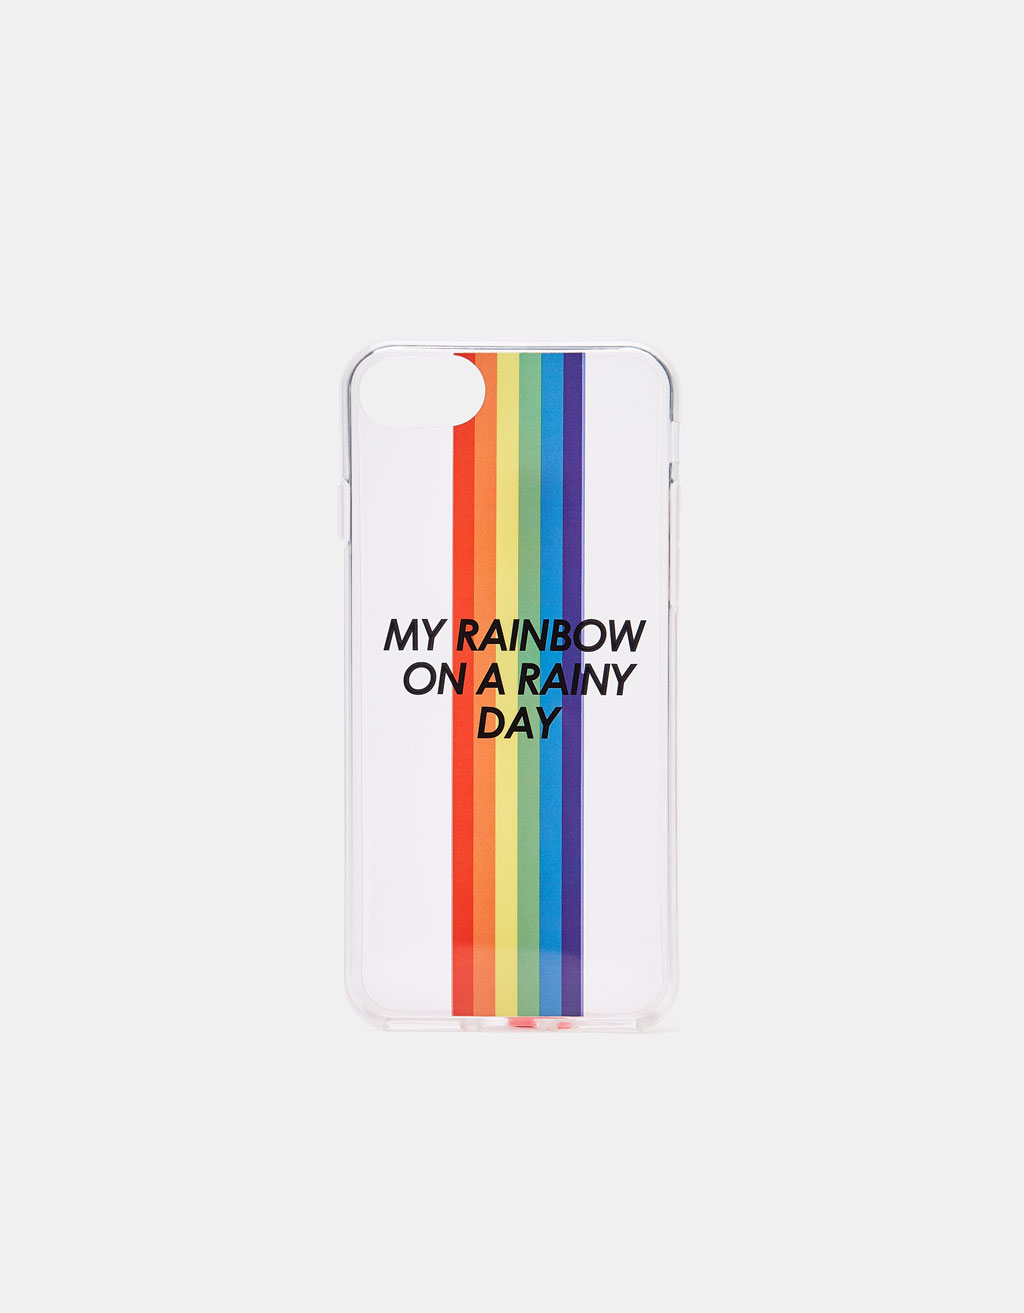 Carcasa arcoiris iPhone 6/6s/7/8